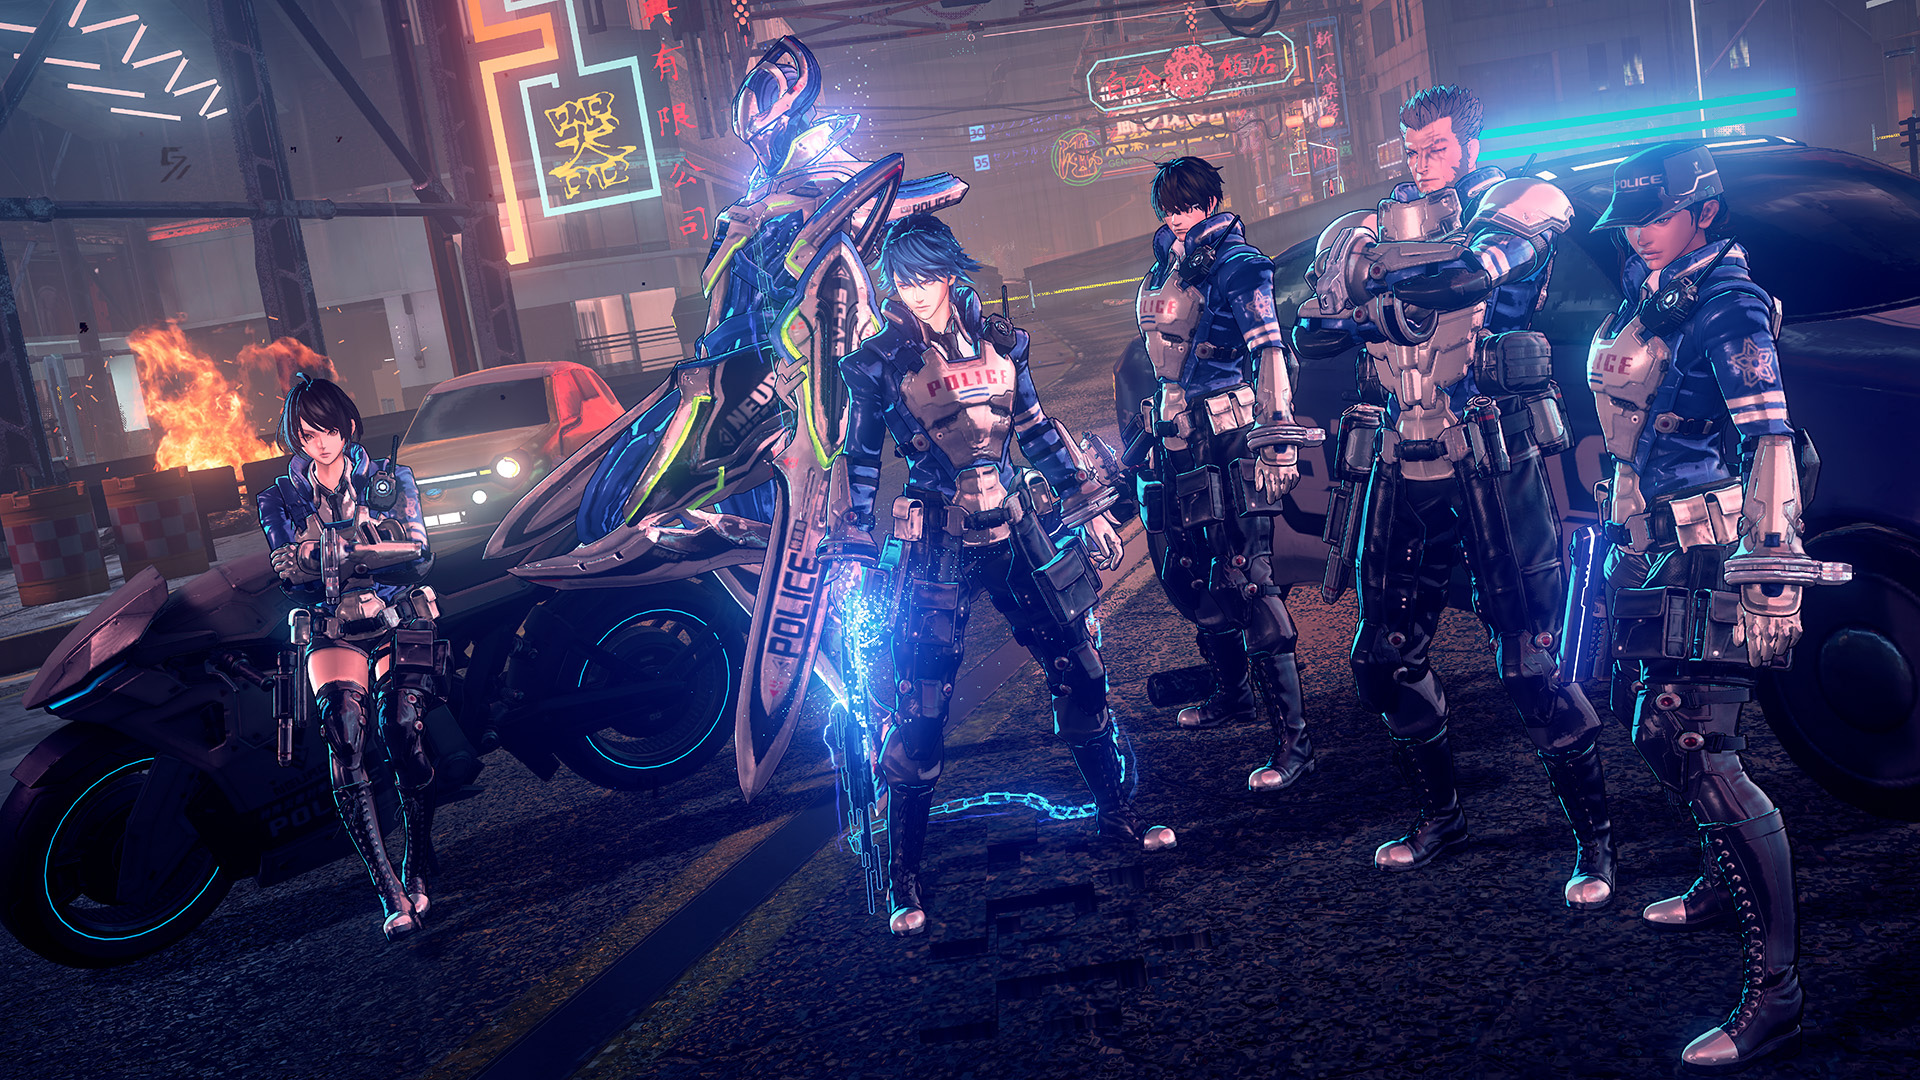 Astral Chain is a new Platinum game coming to Switch and it looks anime as hell screenshot